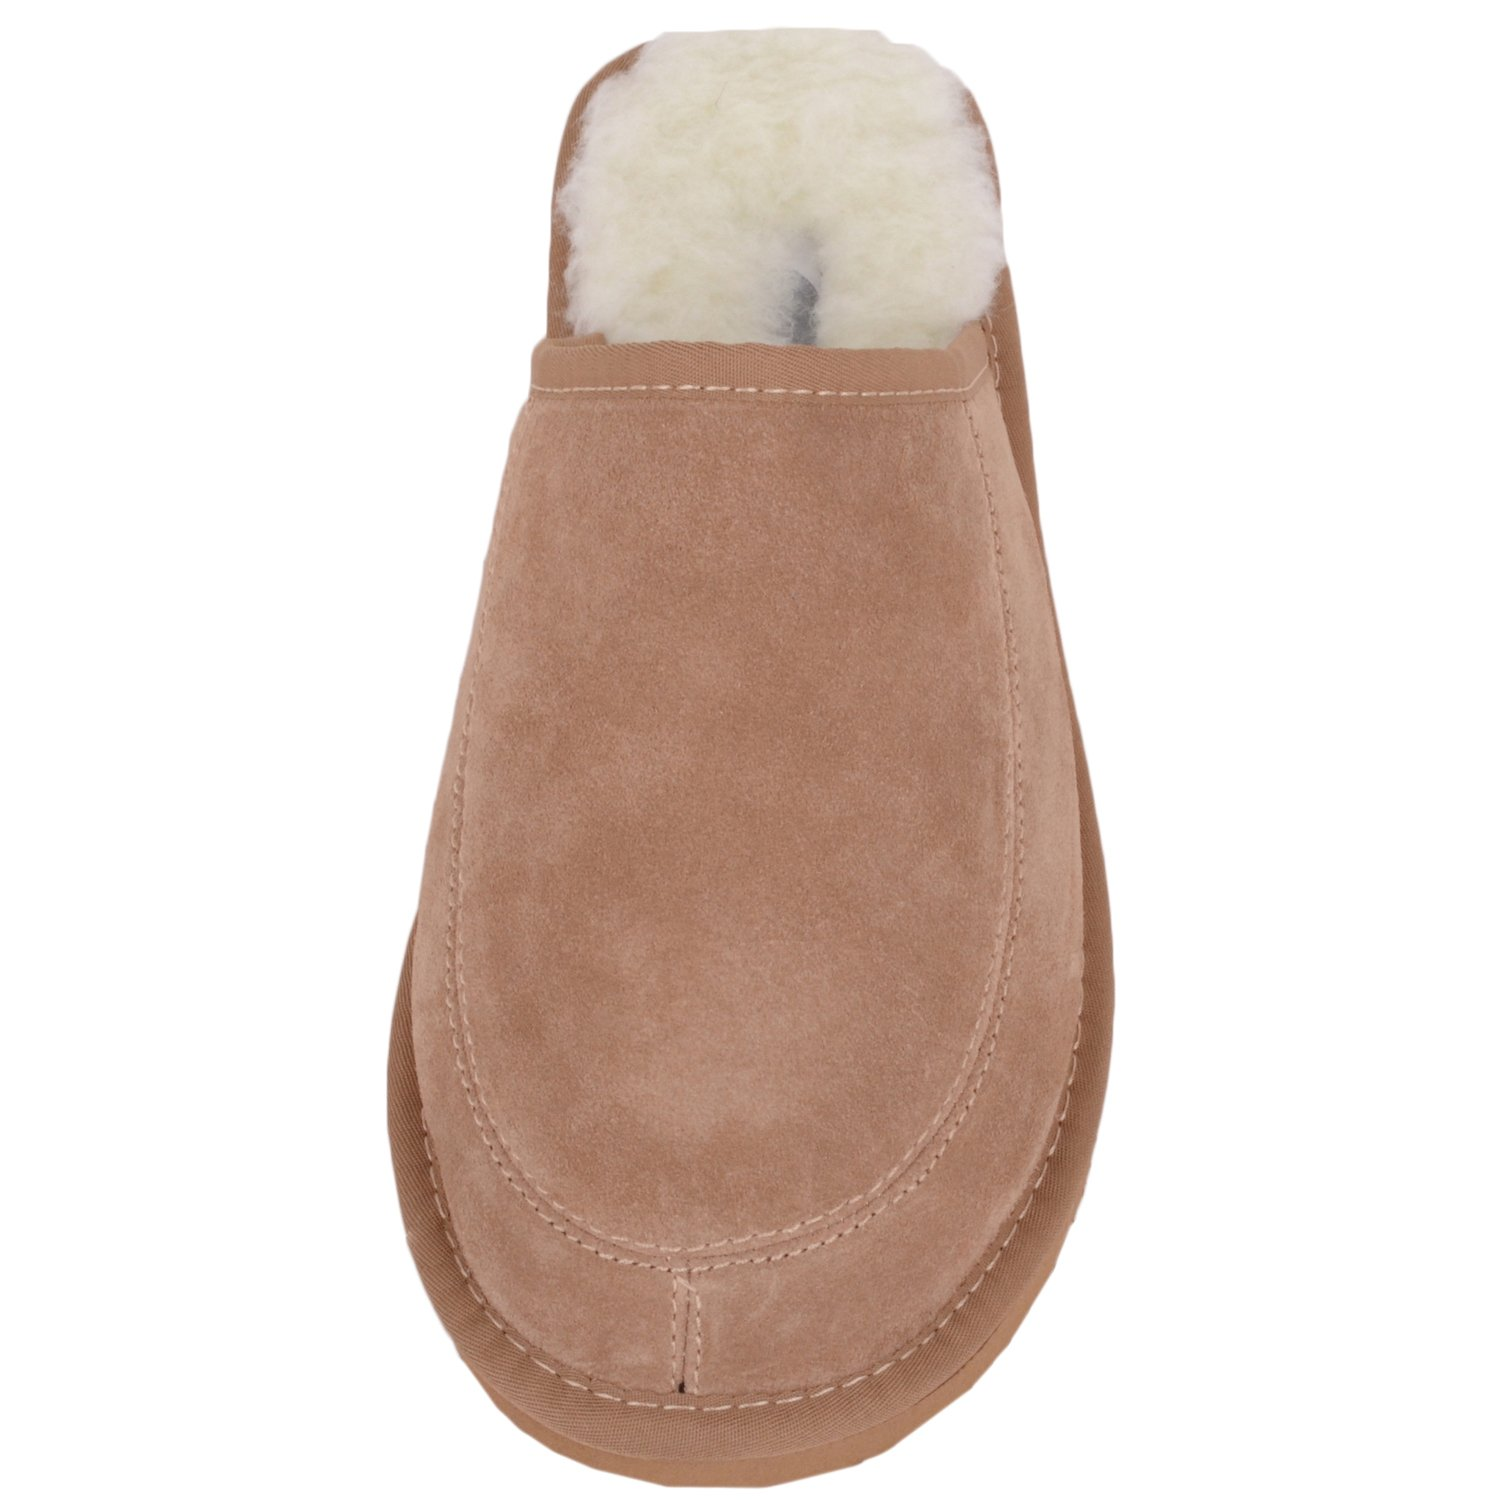 Snugrugs Suede with Wool Lining and Rubber Sole, Unisex Erwachsene Flache Hausschuhe, Braun (Camel), 37 EU